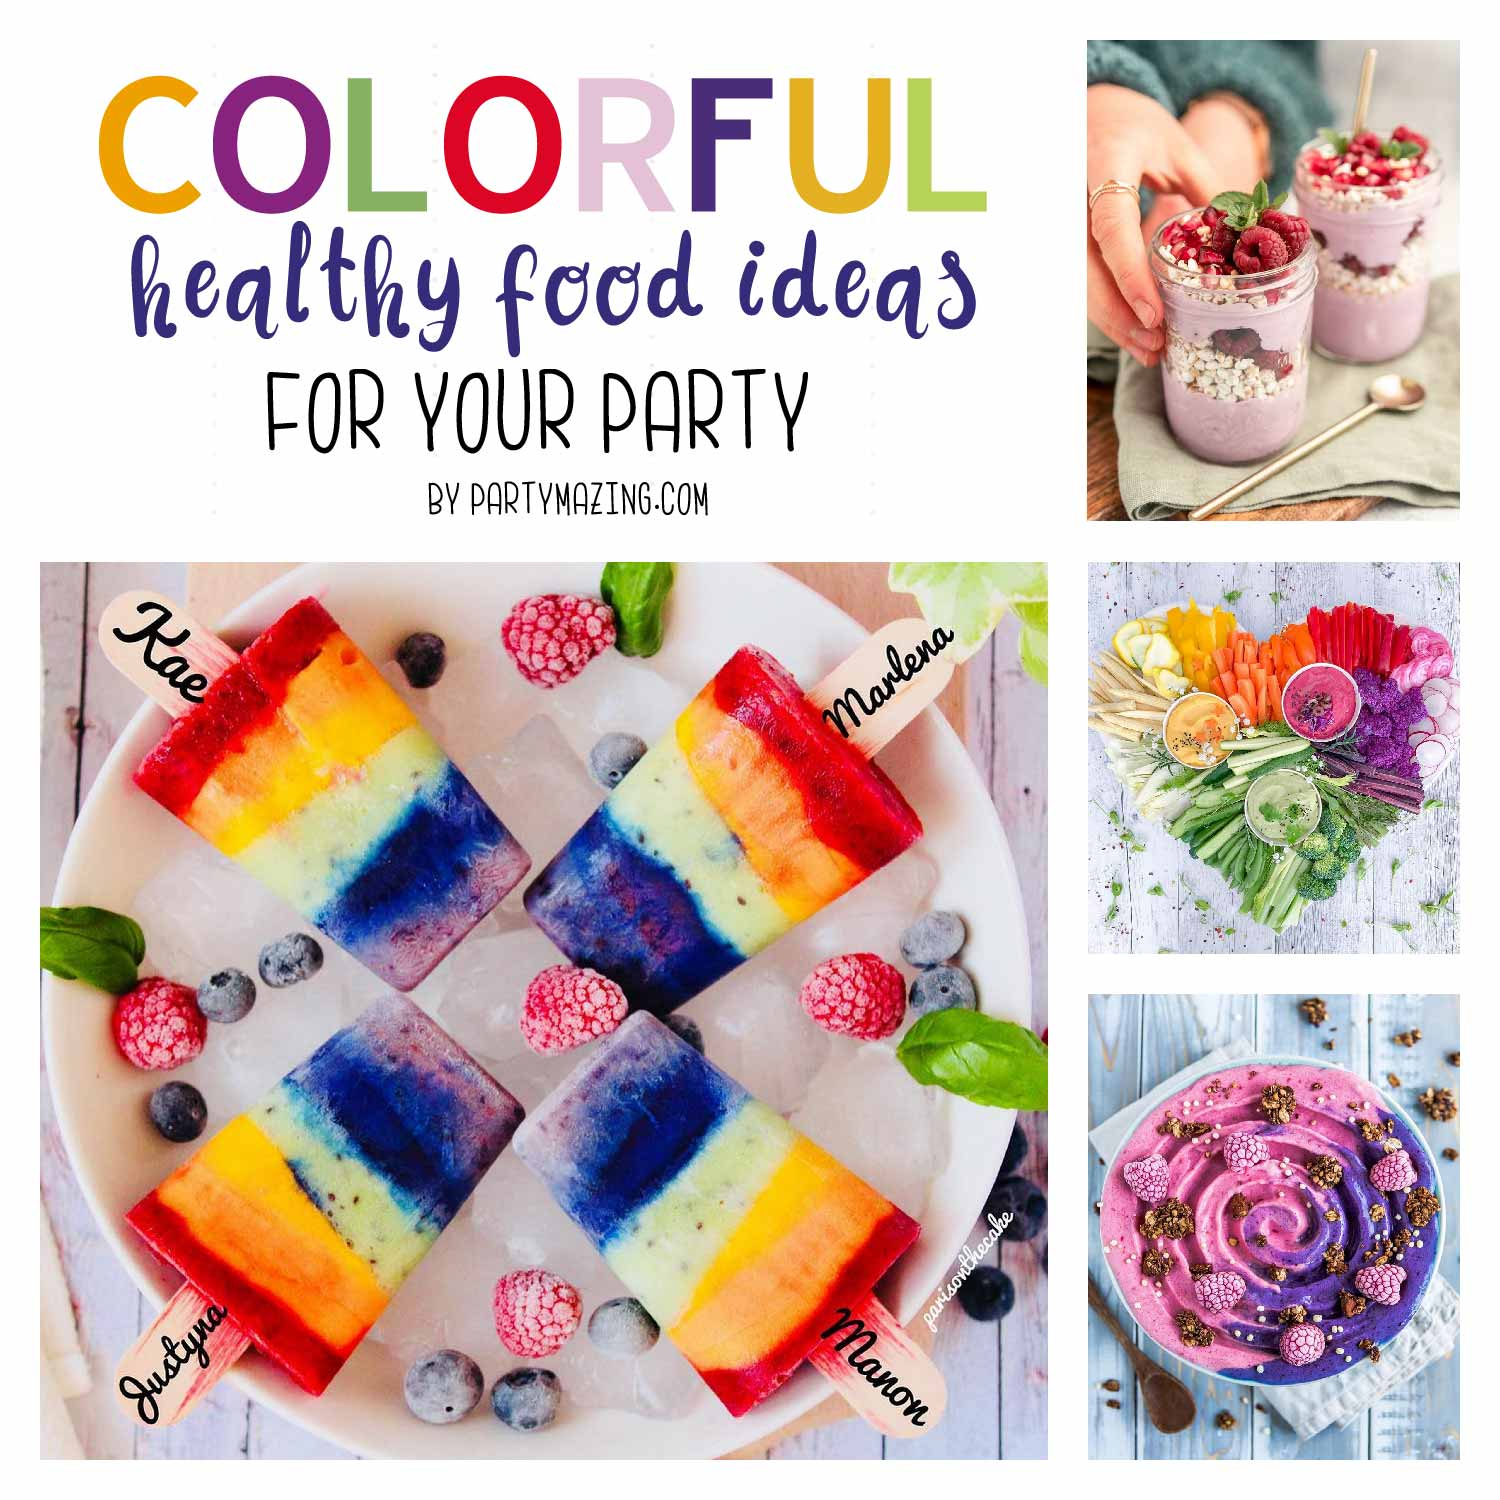 Colorful Summer Food Ideas and Tips for Your Party Table